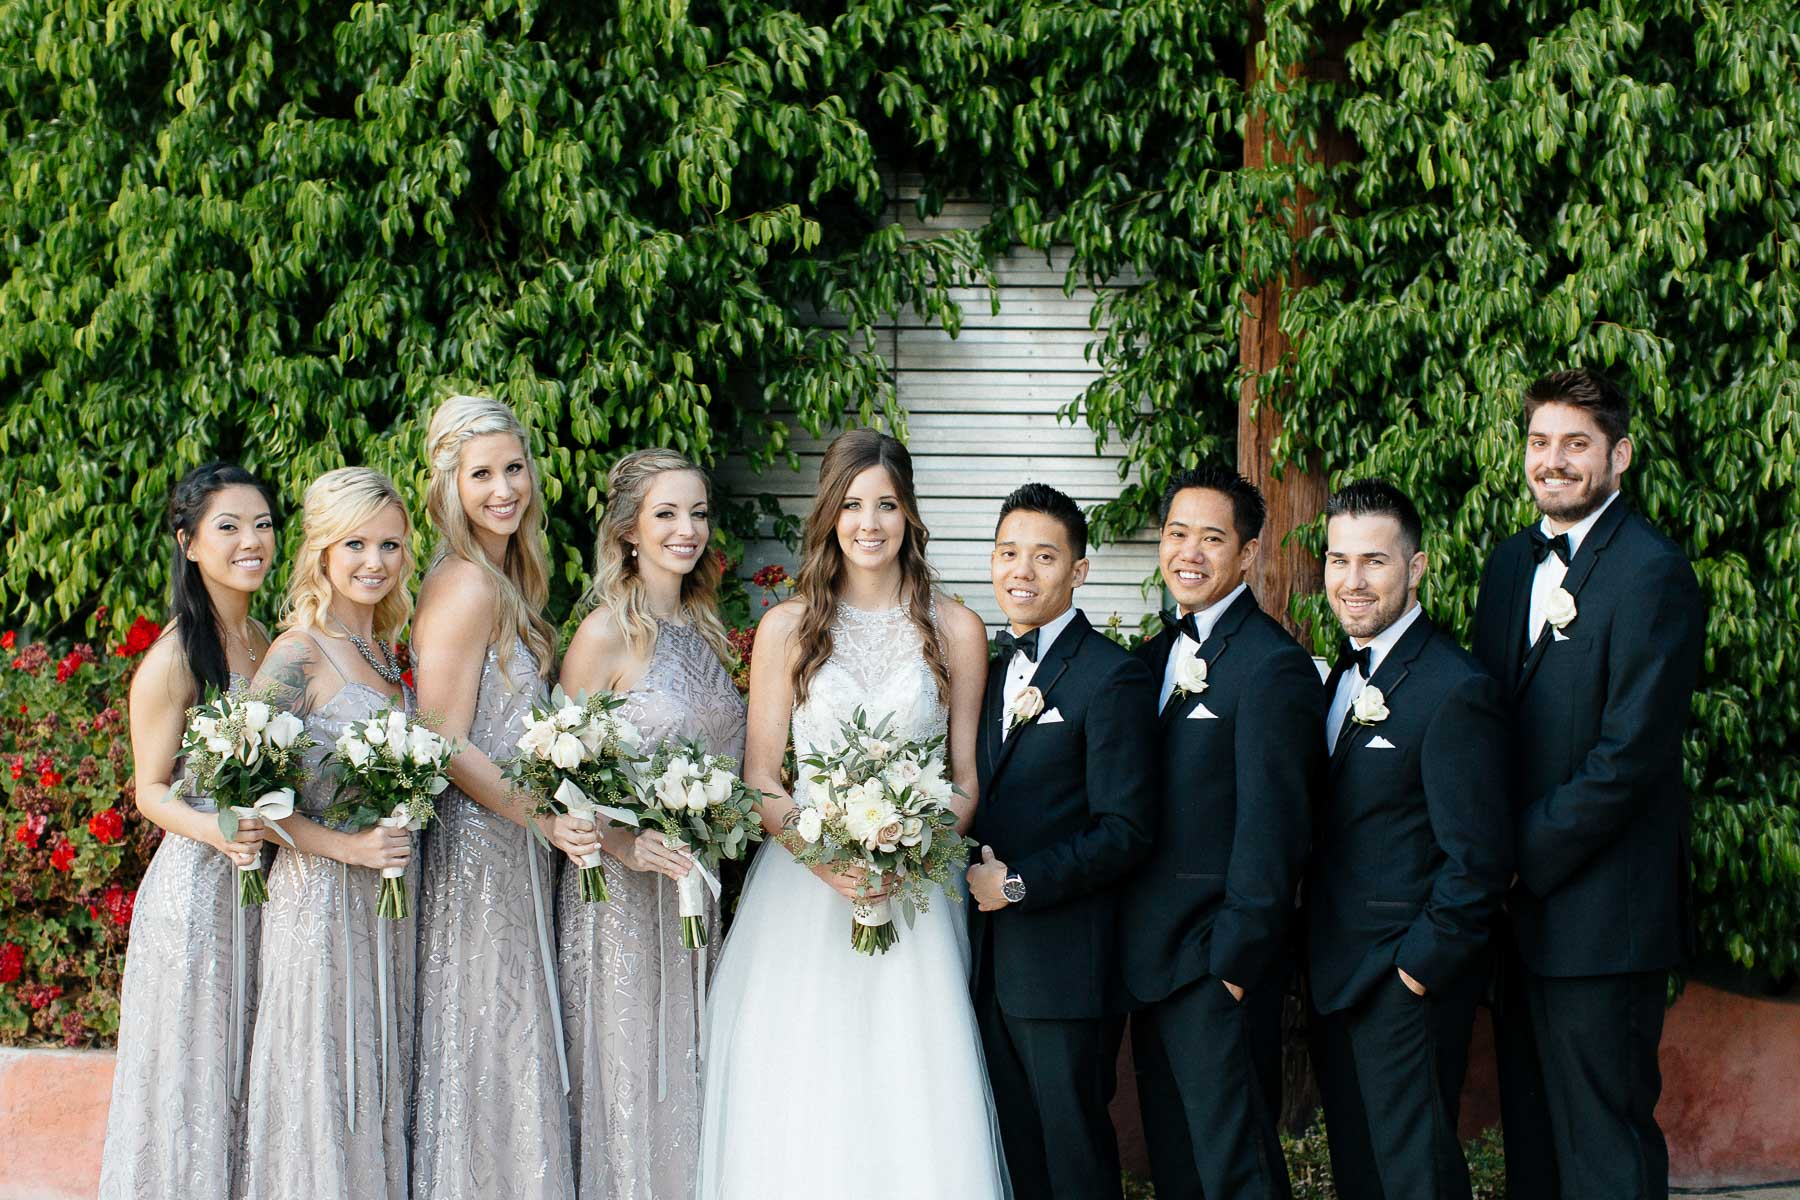 161112-Luxium-Weddings-Arizona-Jon-Madison-Boojum-Tree-First-Look-041.jpg